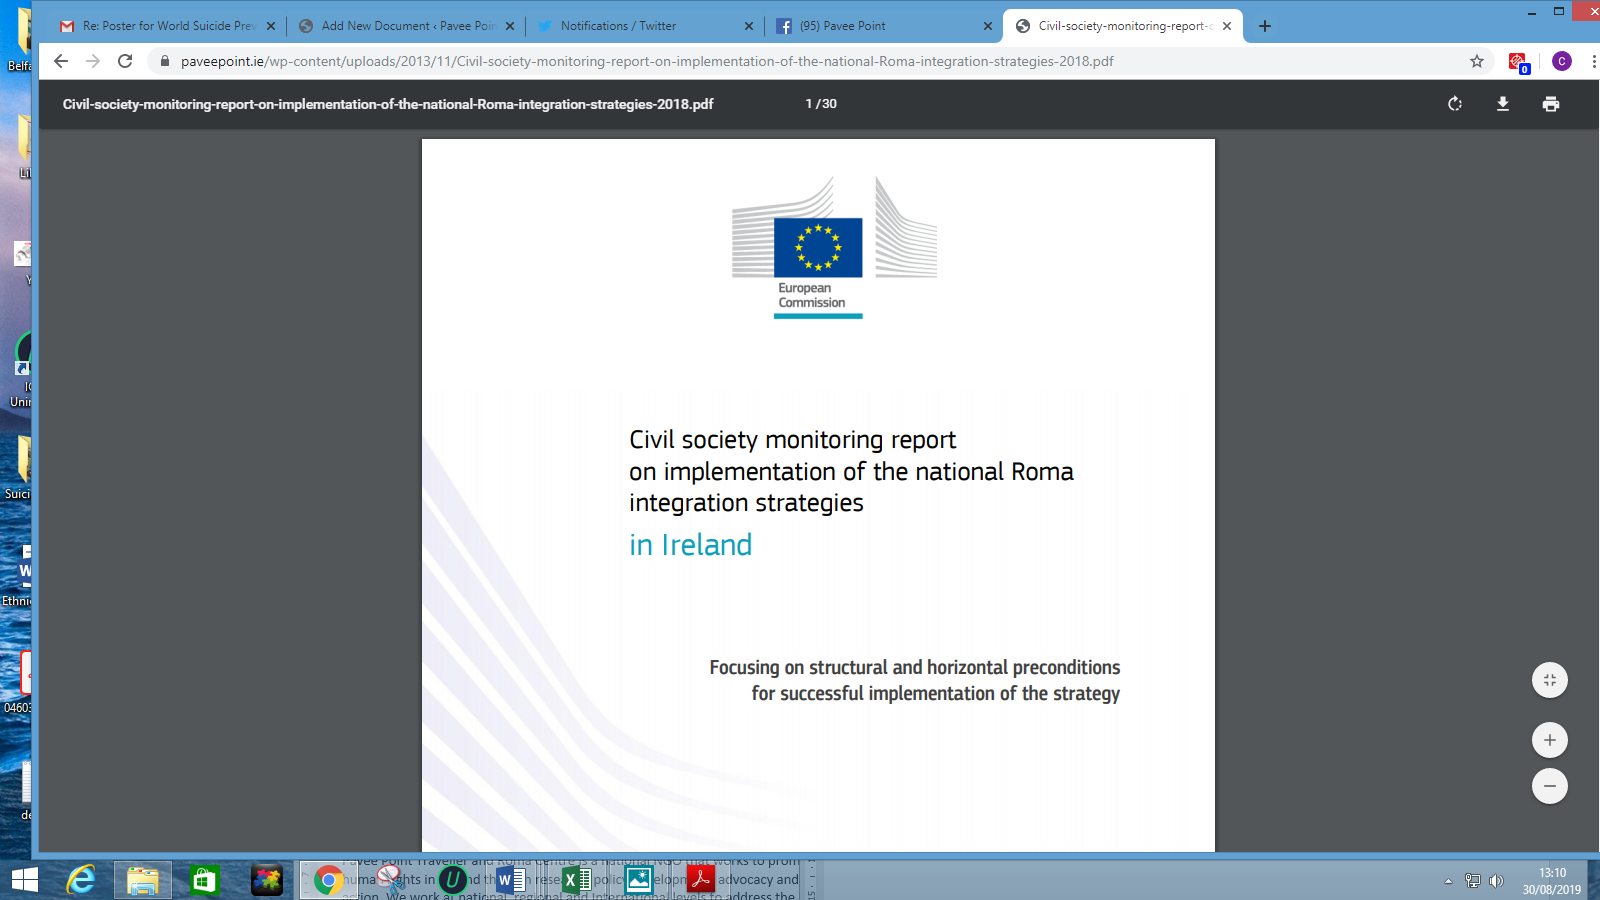 Civil Society Monitoring Report on Implementation of the National Roma Integration Strategies in Ireland, 2018